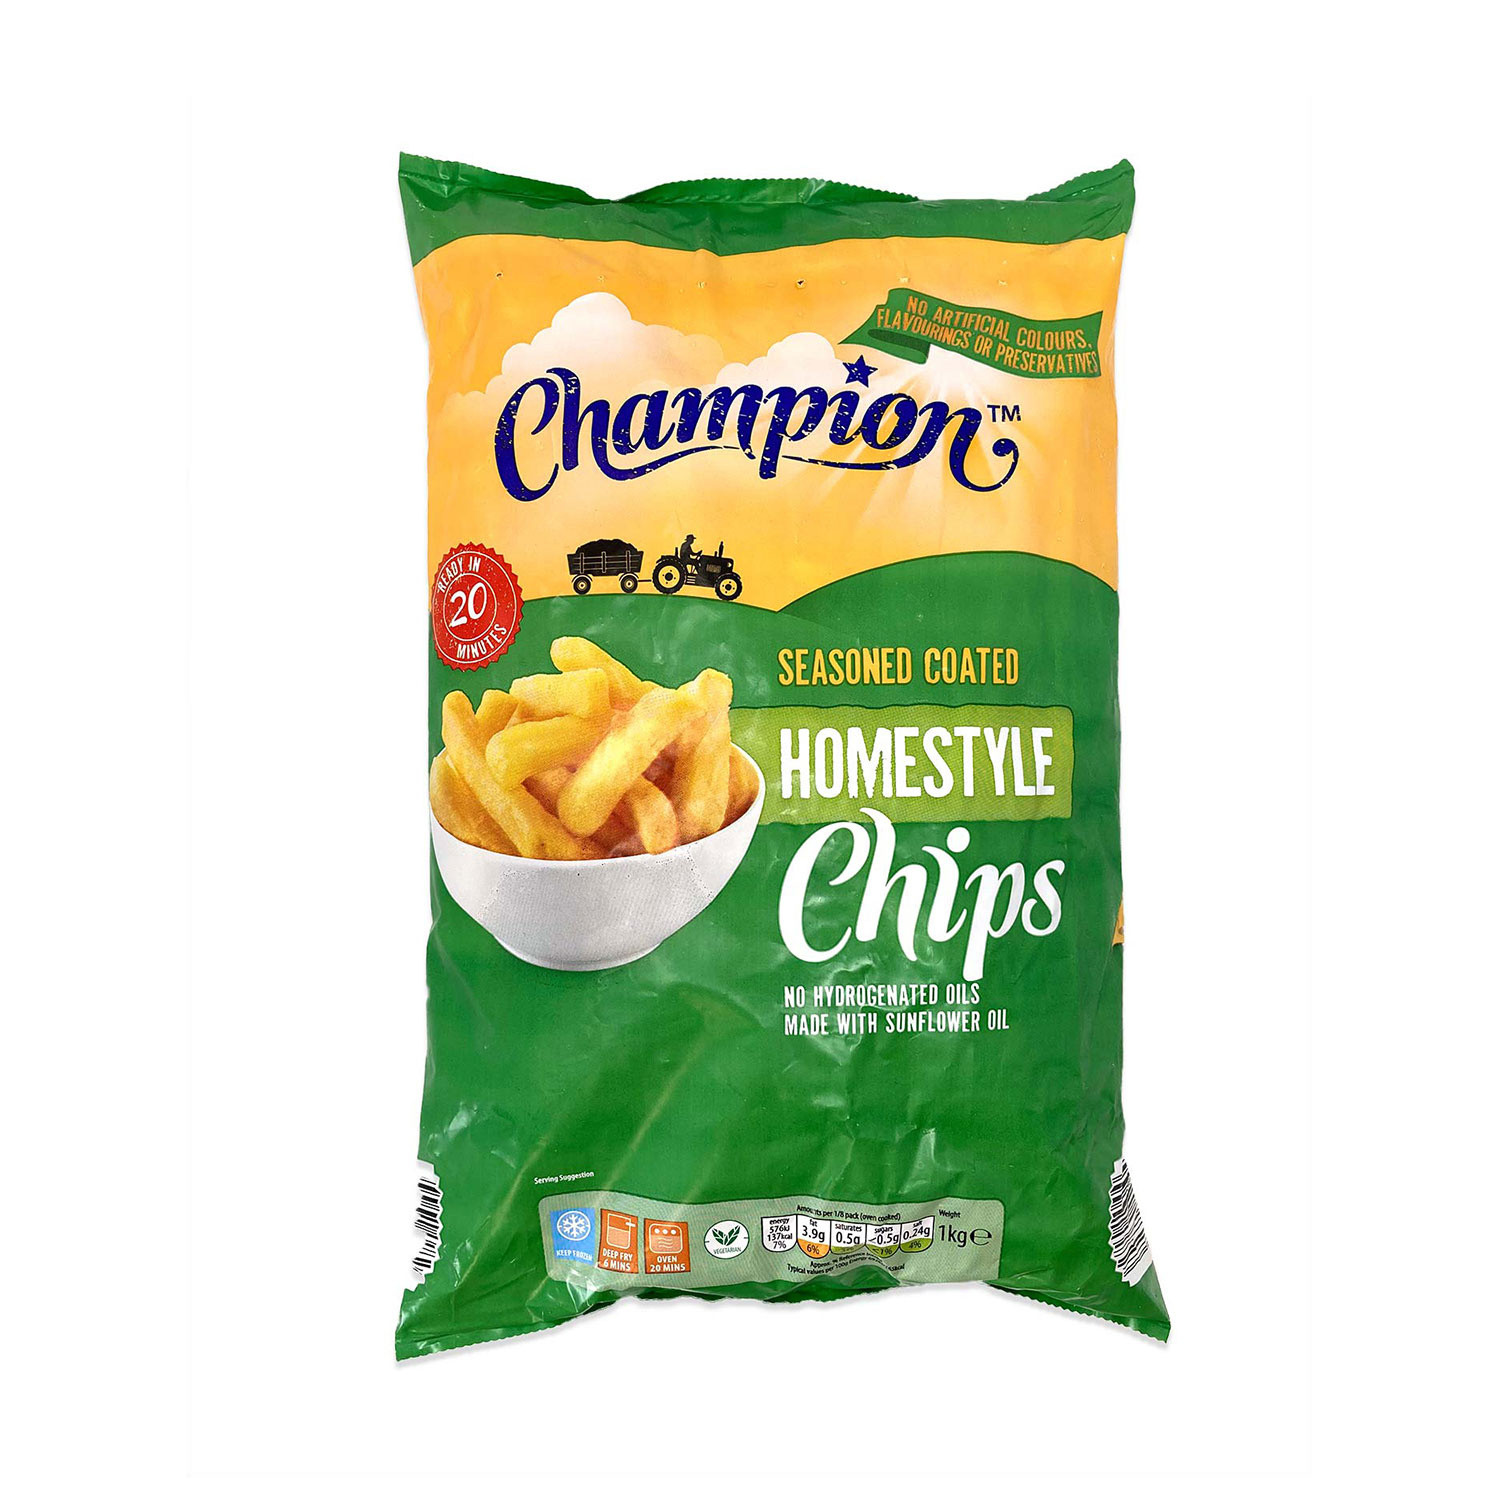 Seasoned Coated Homestyle Chips